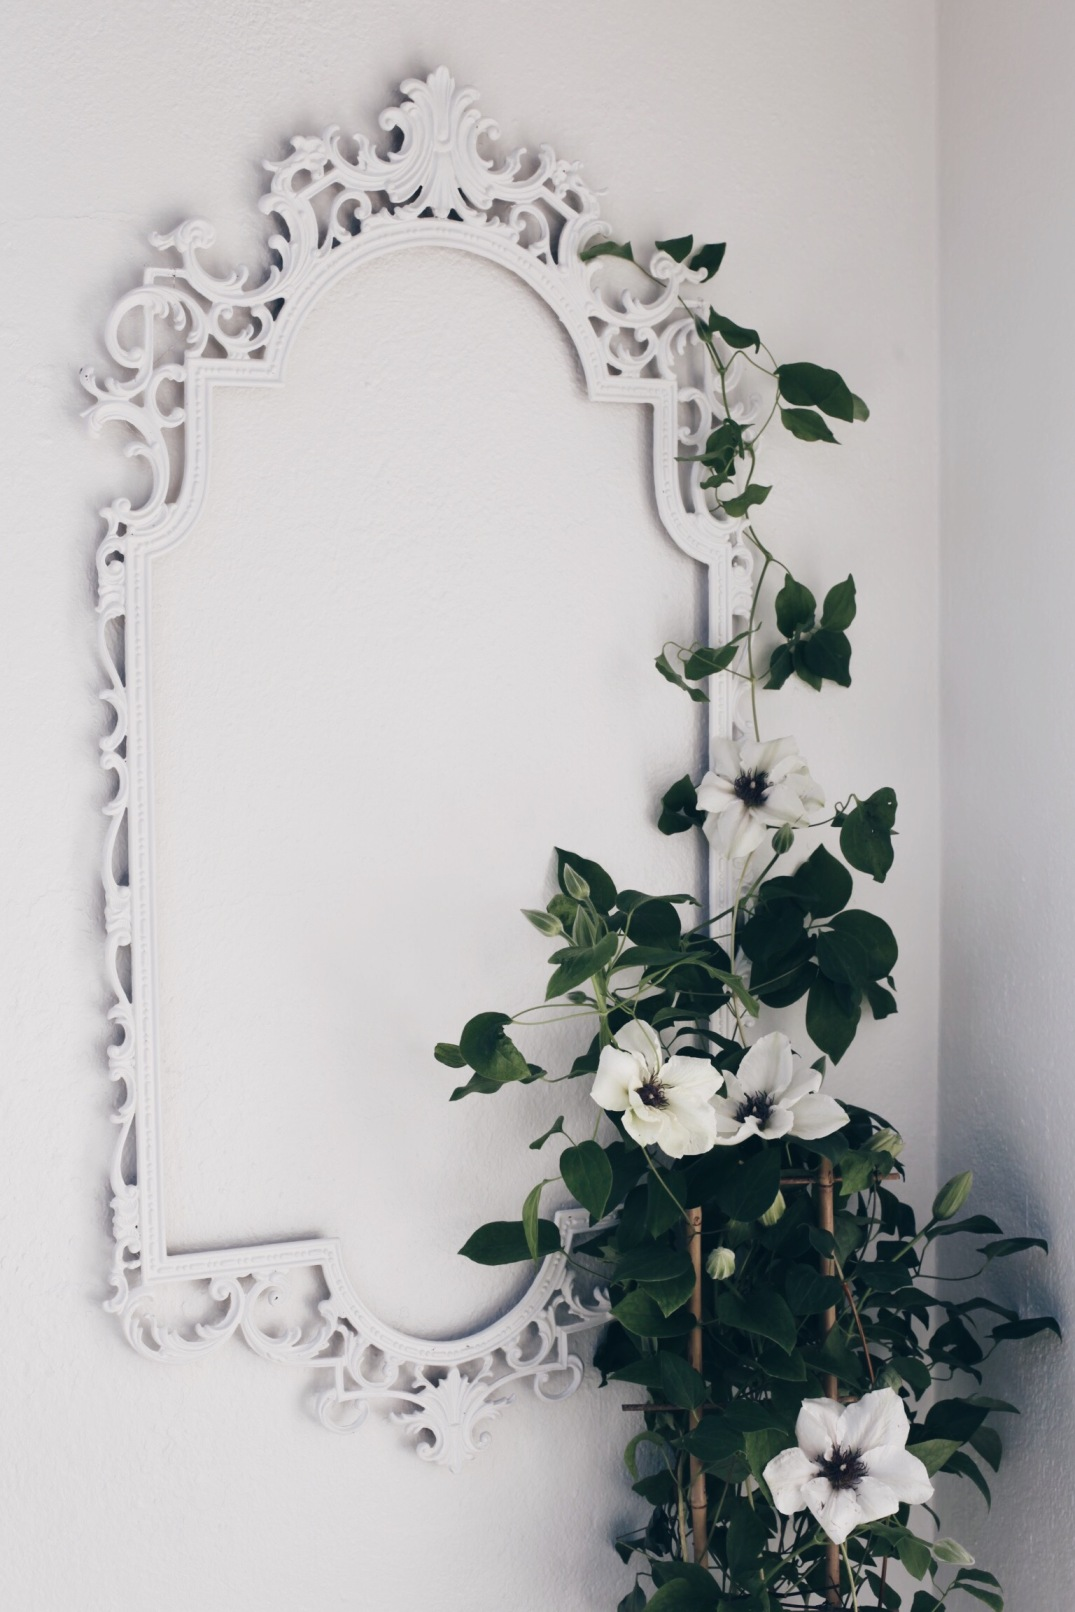 DIY trellis for my clematis - painted with All White from Farrow & Ball